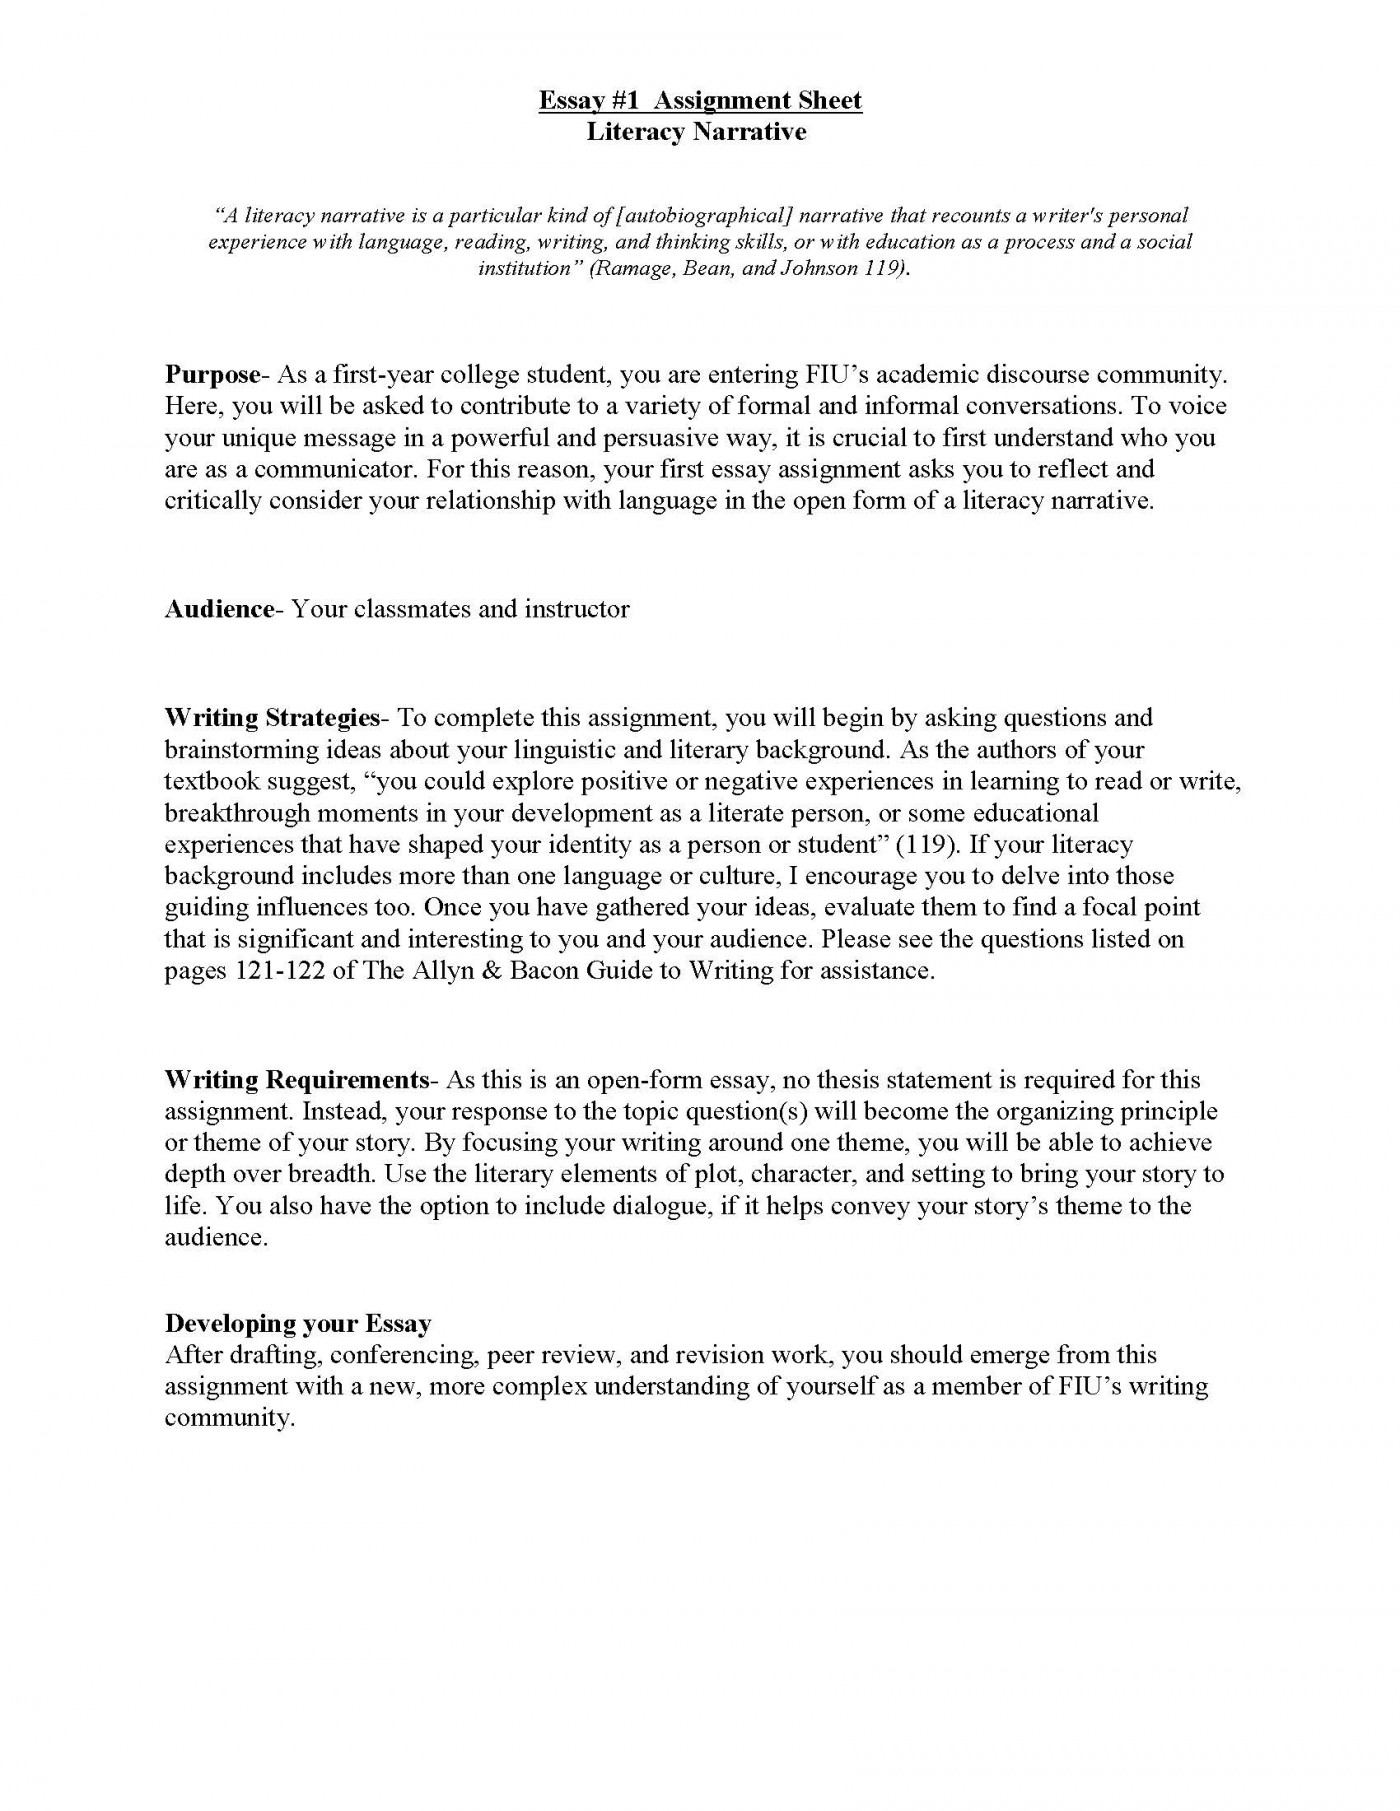 002 Essay Example Literacy Narrative Unit Assignment Spring 2012 Page 1 Awful Paper Topics Test Examples 1400